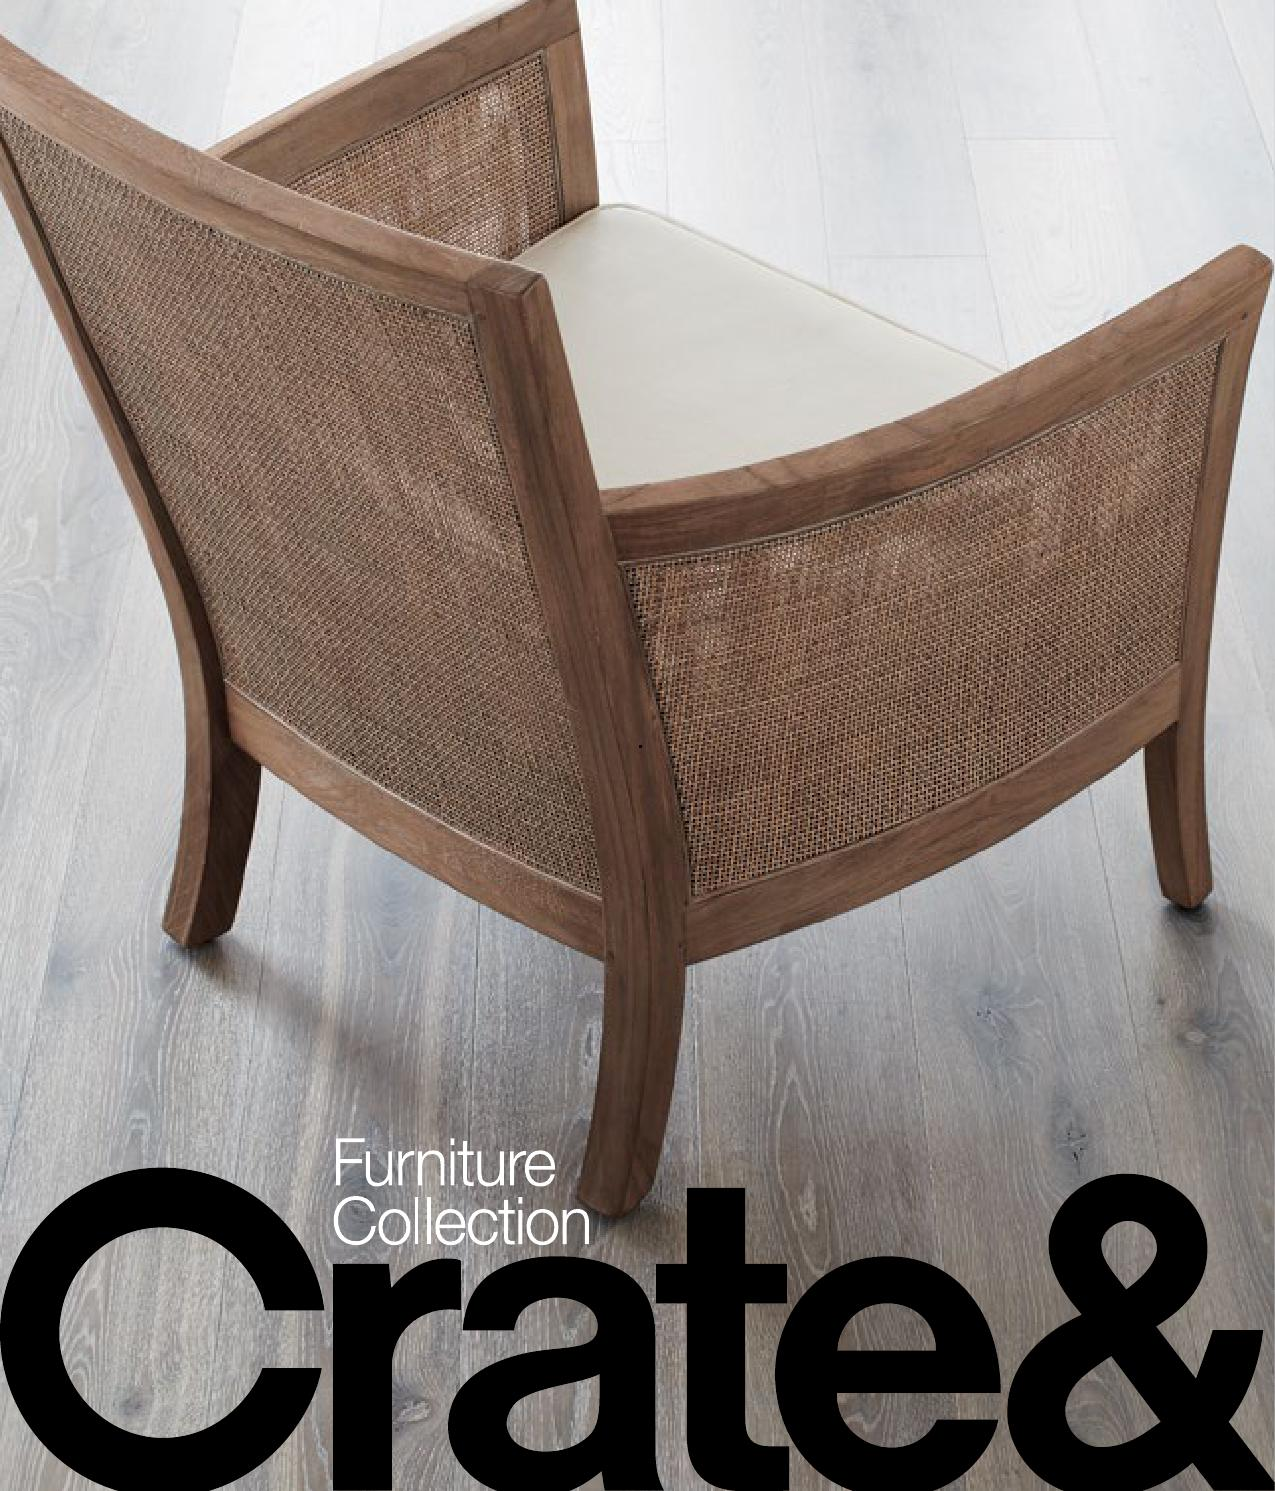 Crate And Barrel Furniture Catalog By Crate And Barrel